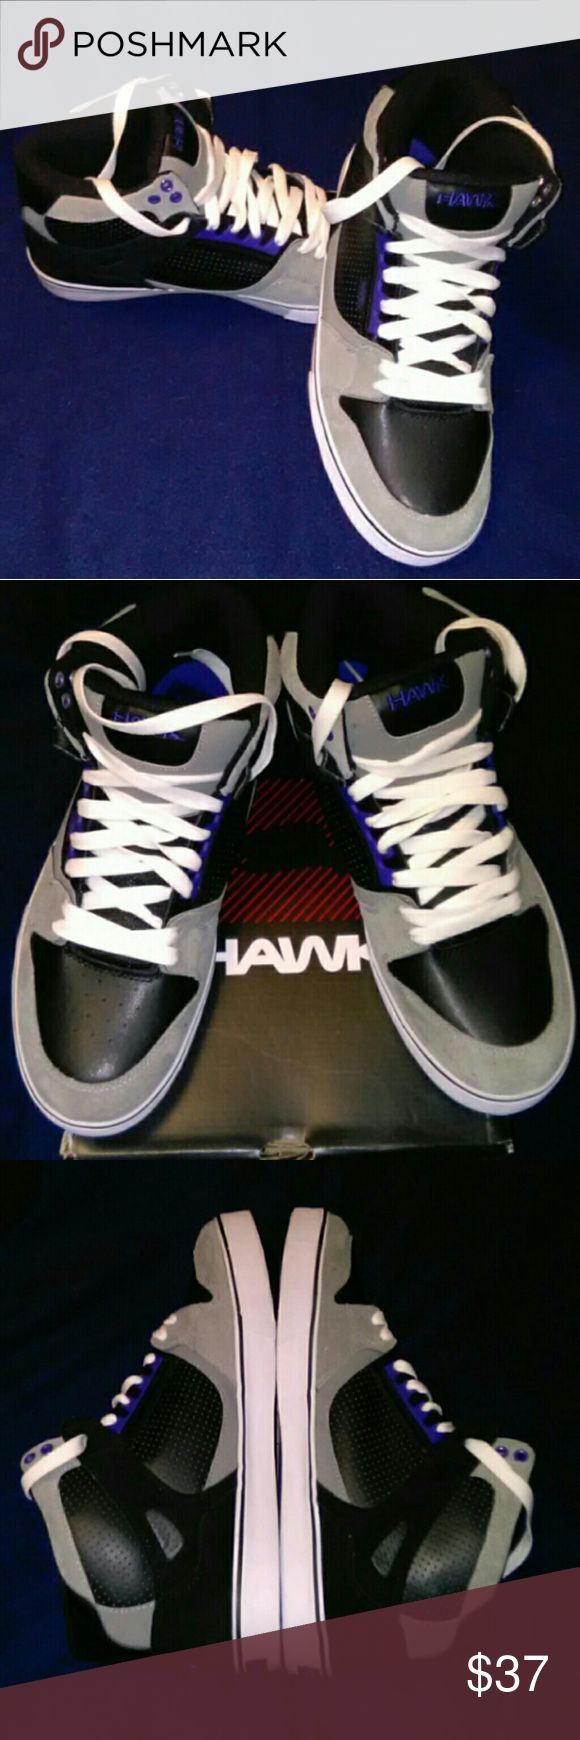 🆒🌟🆕🌟 Tony Hawk  Men's Shoes - 13 Men's NEW Tony Hawk Athletic Shoe (Reasonable offers considered)   🔹Size: 13  🔹Color: Black & Gray with       Ink-Blue & White Trim  🔹SAVE - Originally $69.99  🔹Upper: Suede/Leather       & Man-made  🔹Style: High Top Basketball/Skate  🔹 Brand New / Not Worn  🔹 In Original Box  🚀🚀Should ship within 12-24 hours of purchase! Tony Hawk Shoes Athletic Shoes